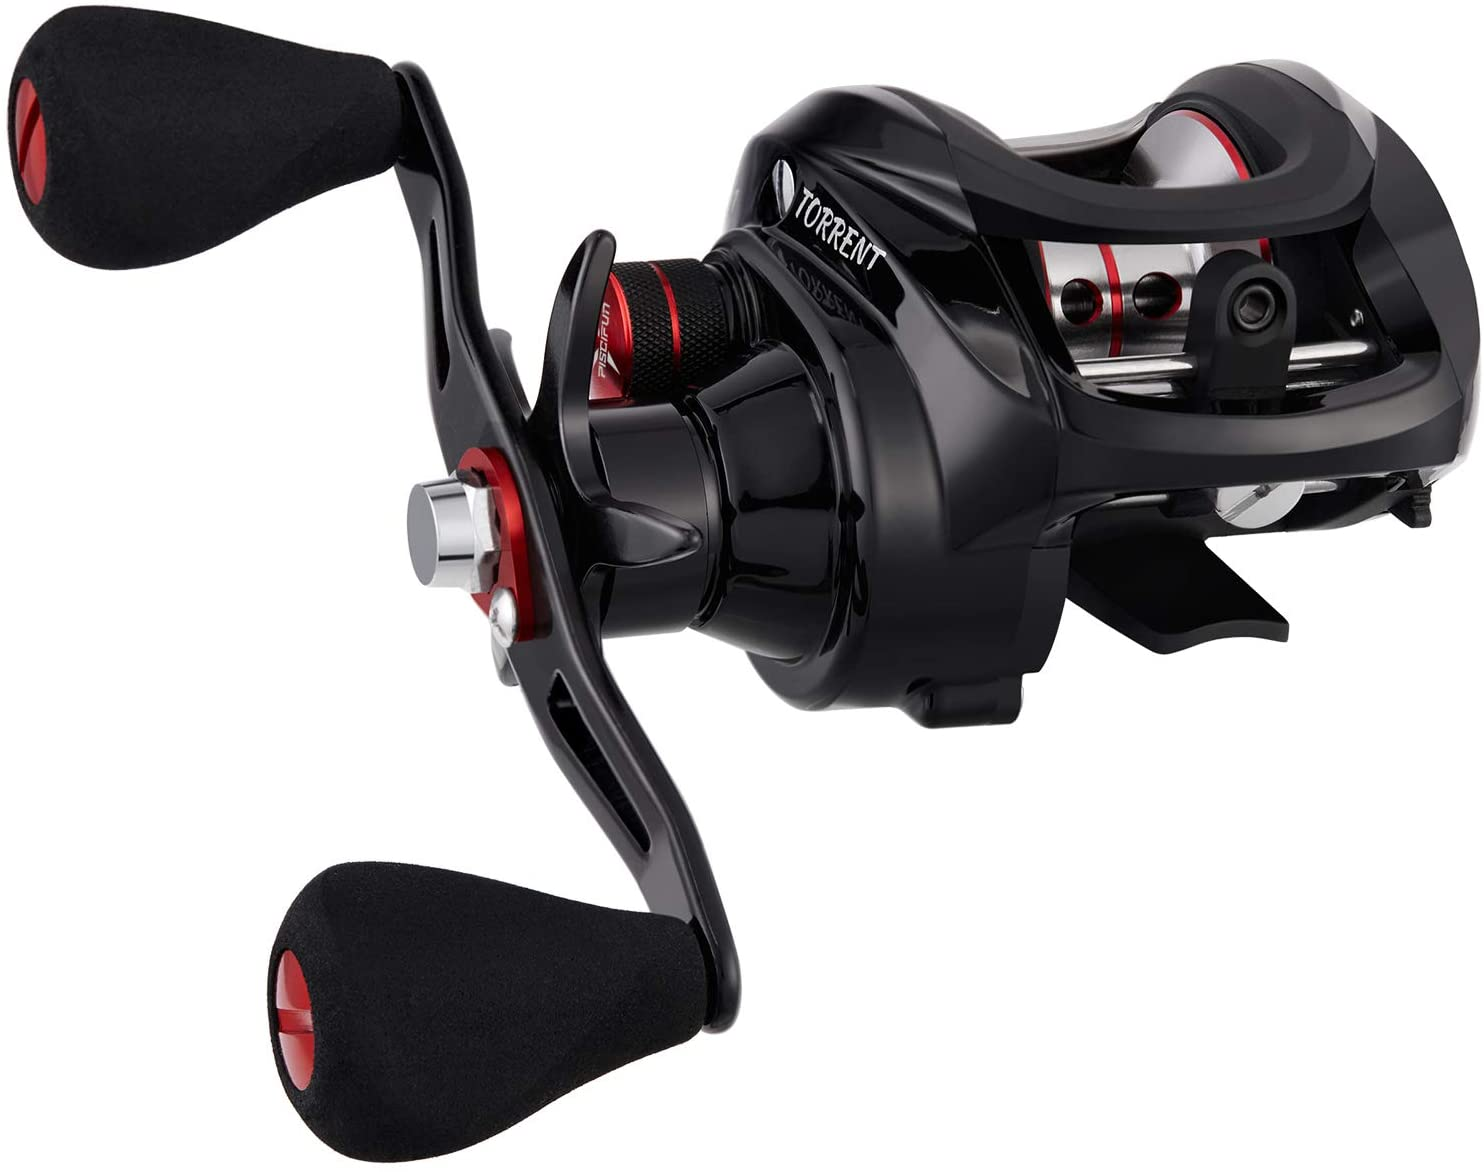 Piscifun Baitcasting Reel for below $50